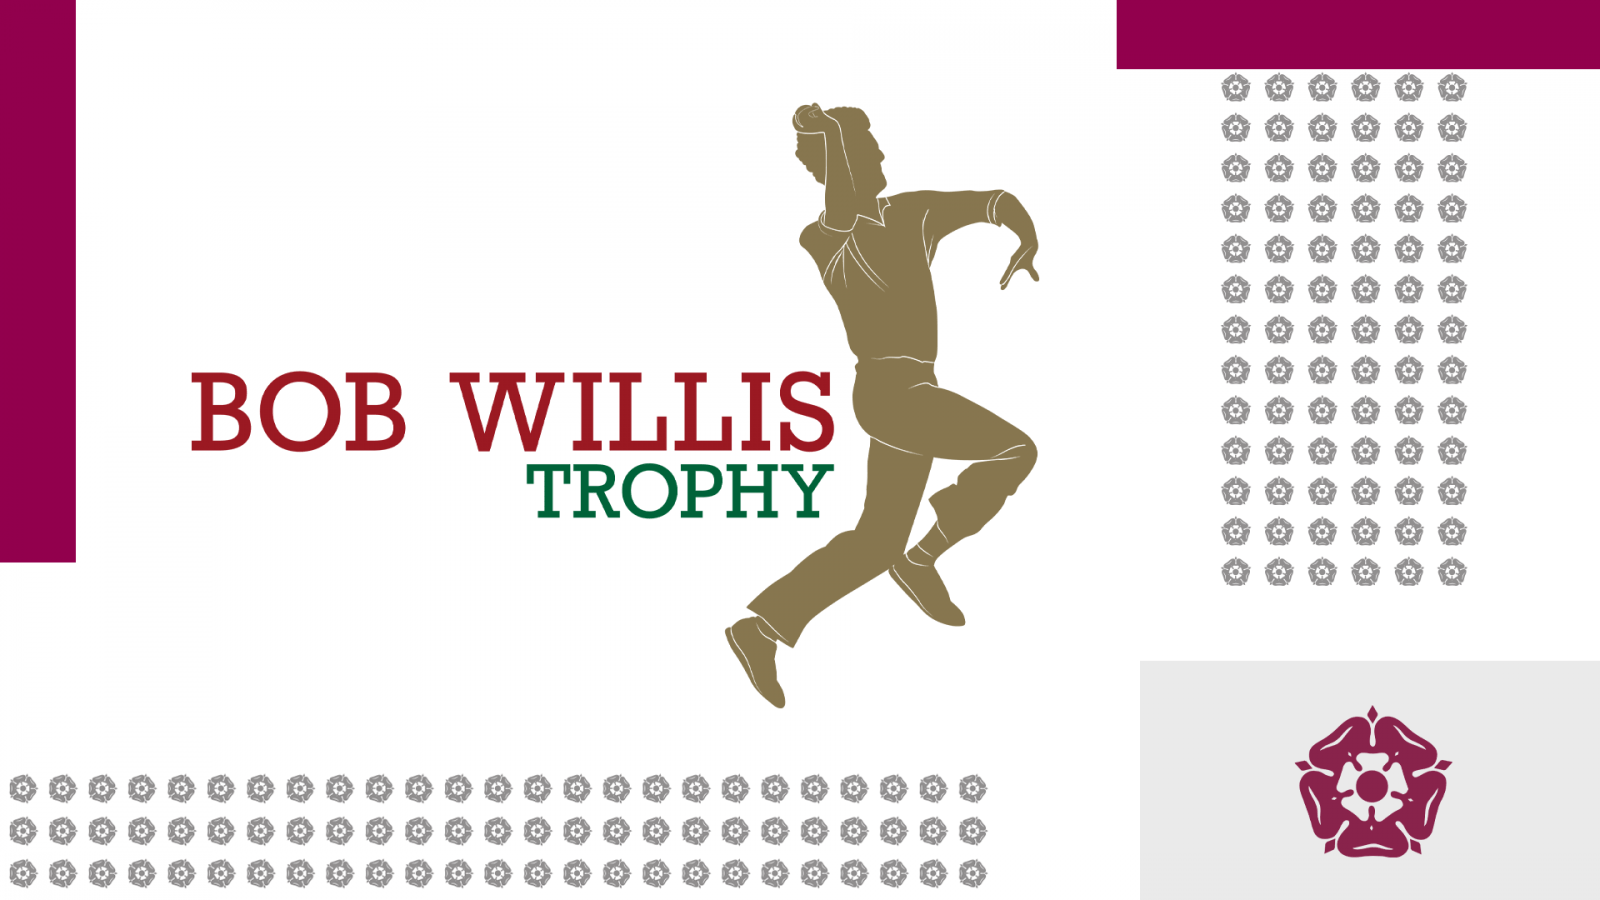 Everything You Need To Know About The Bob Willis Trophy